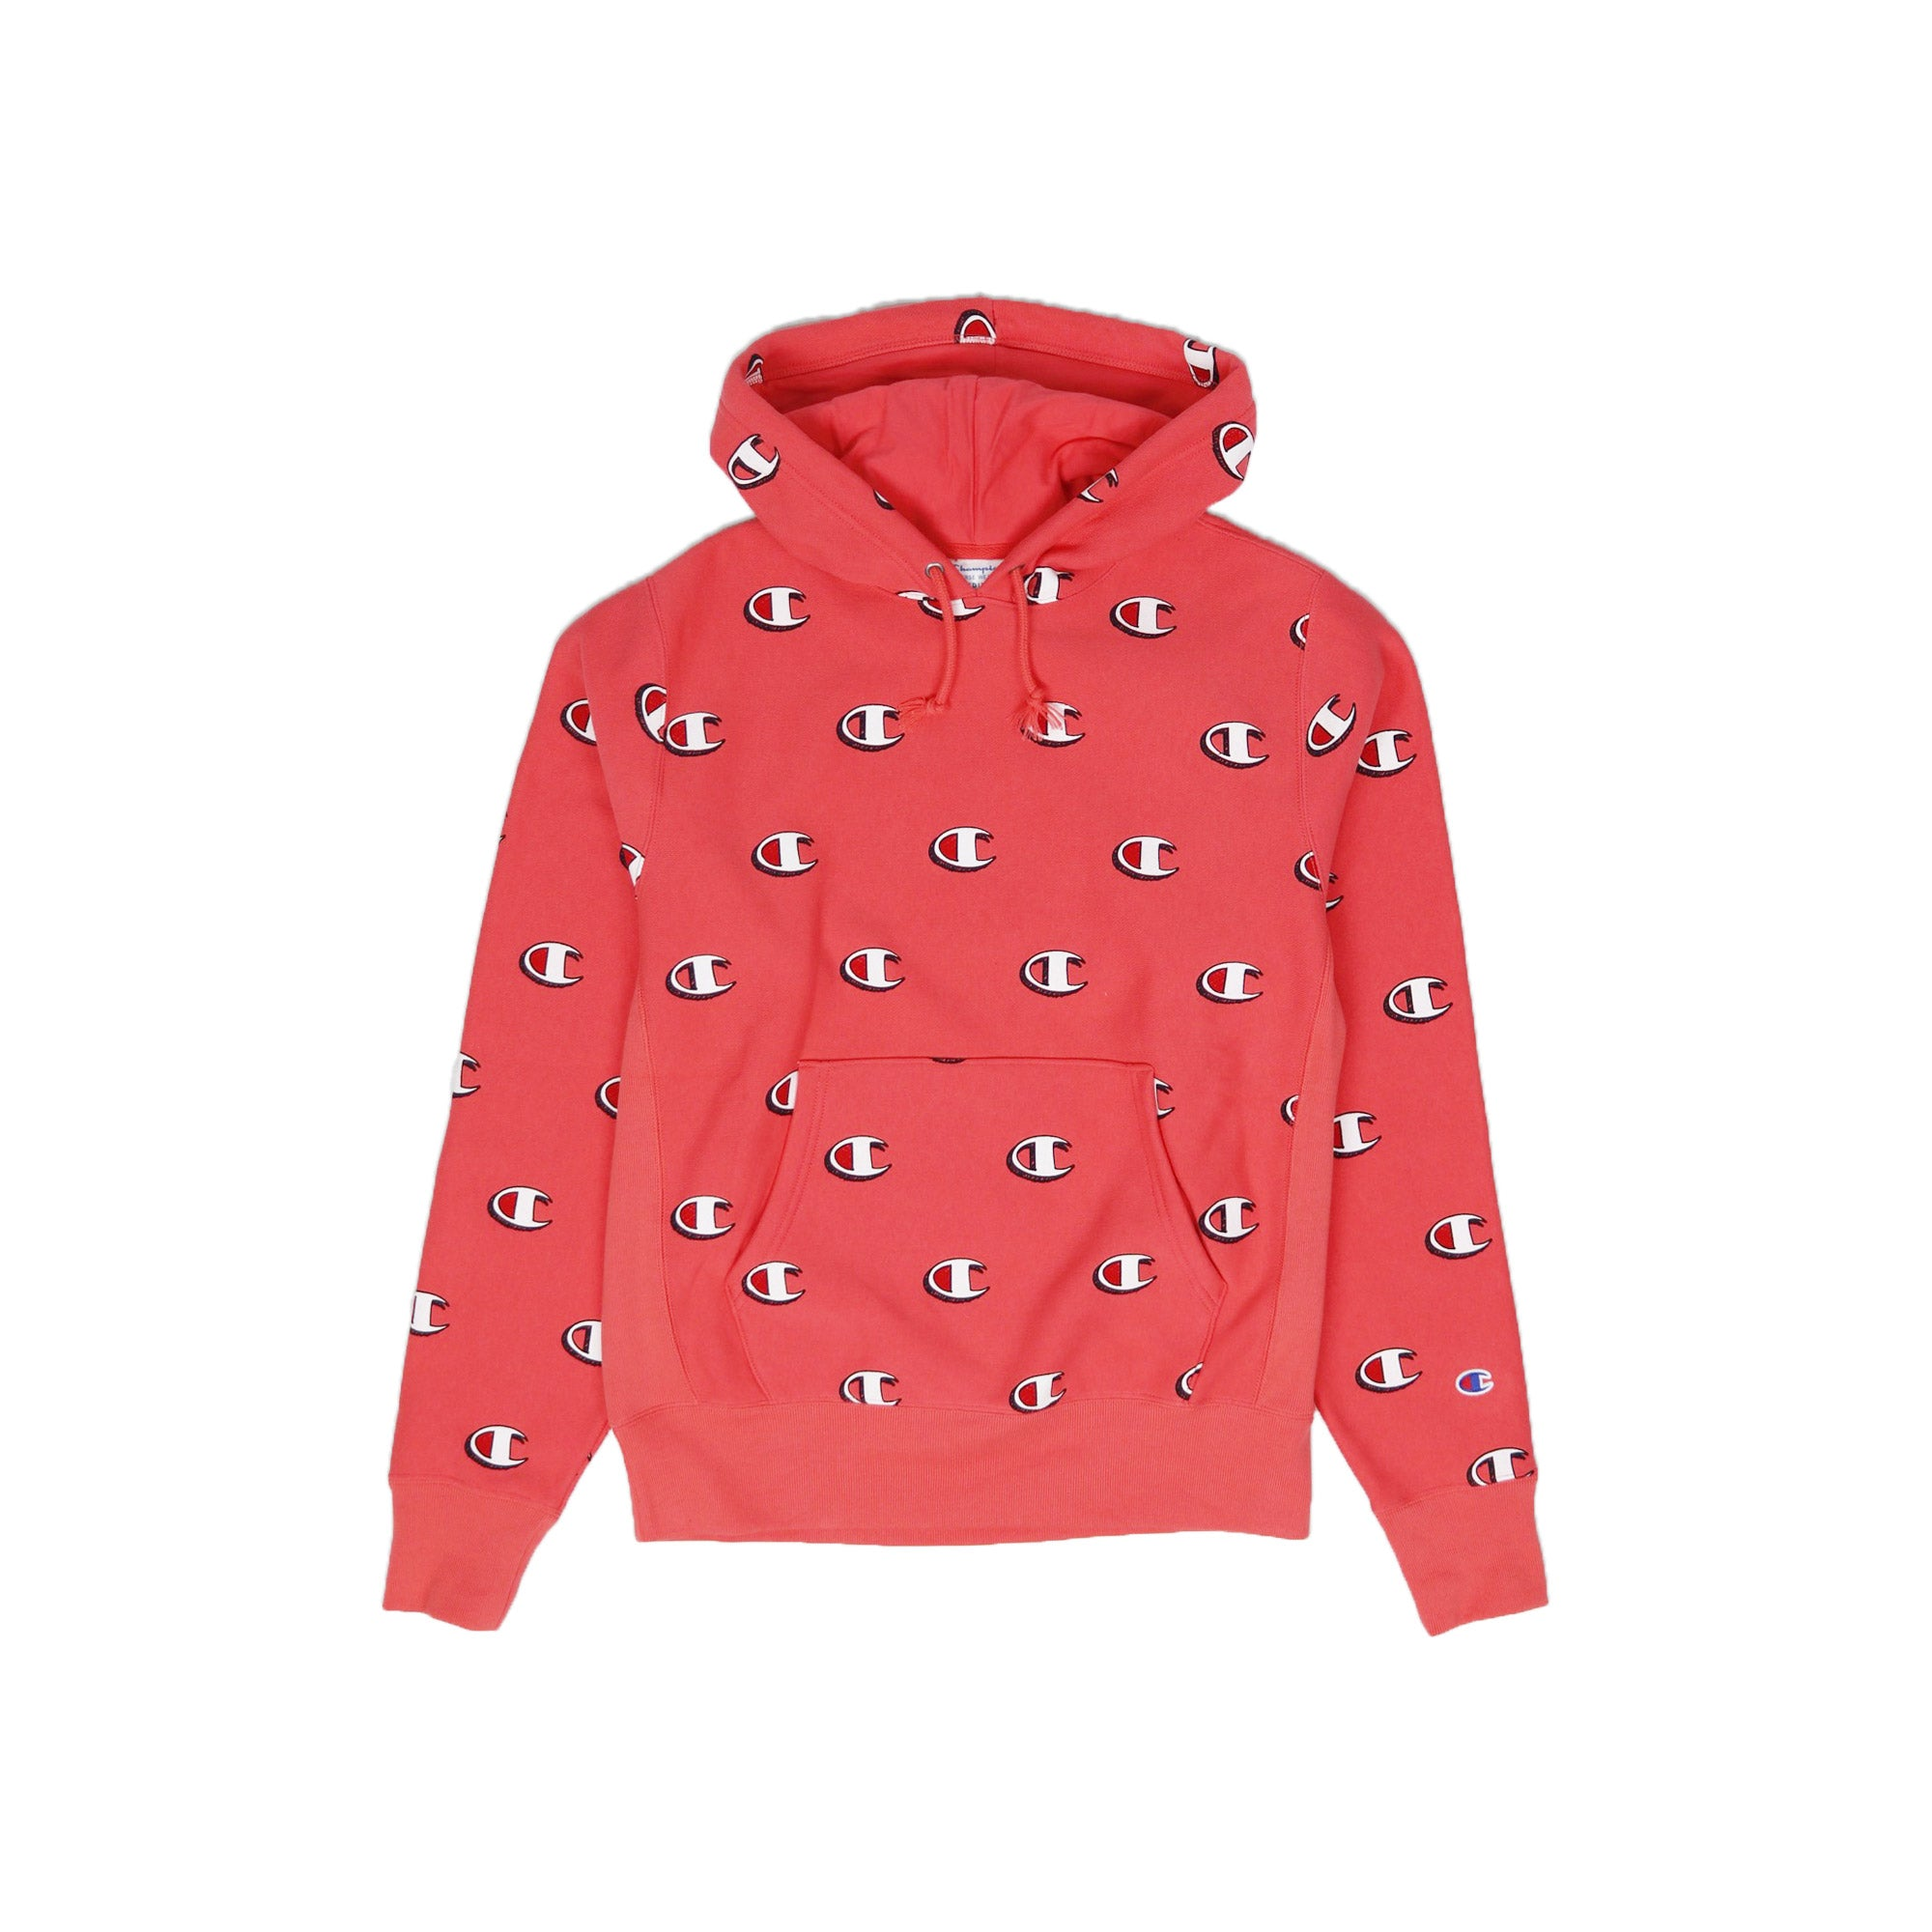 Champion Men's Reverse Weave All Over Print Pullover Hoodie